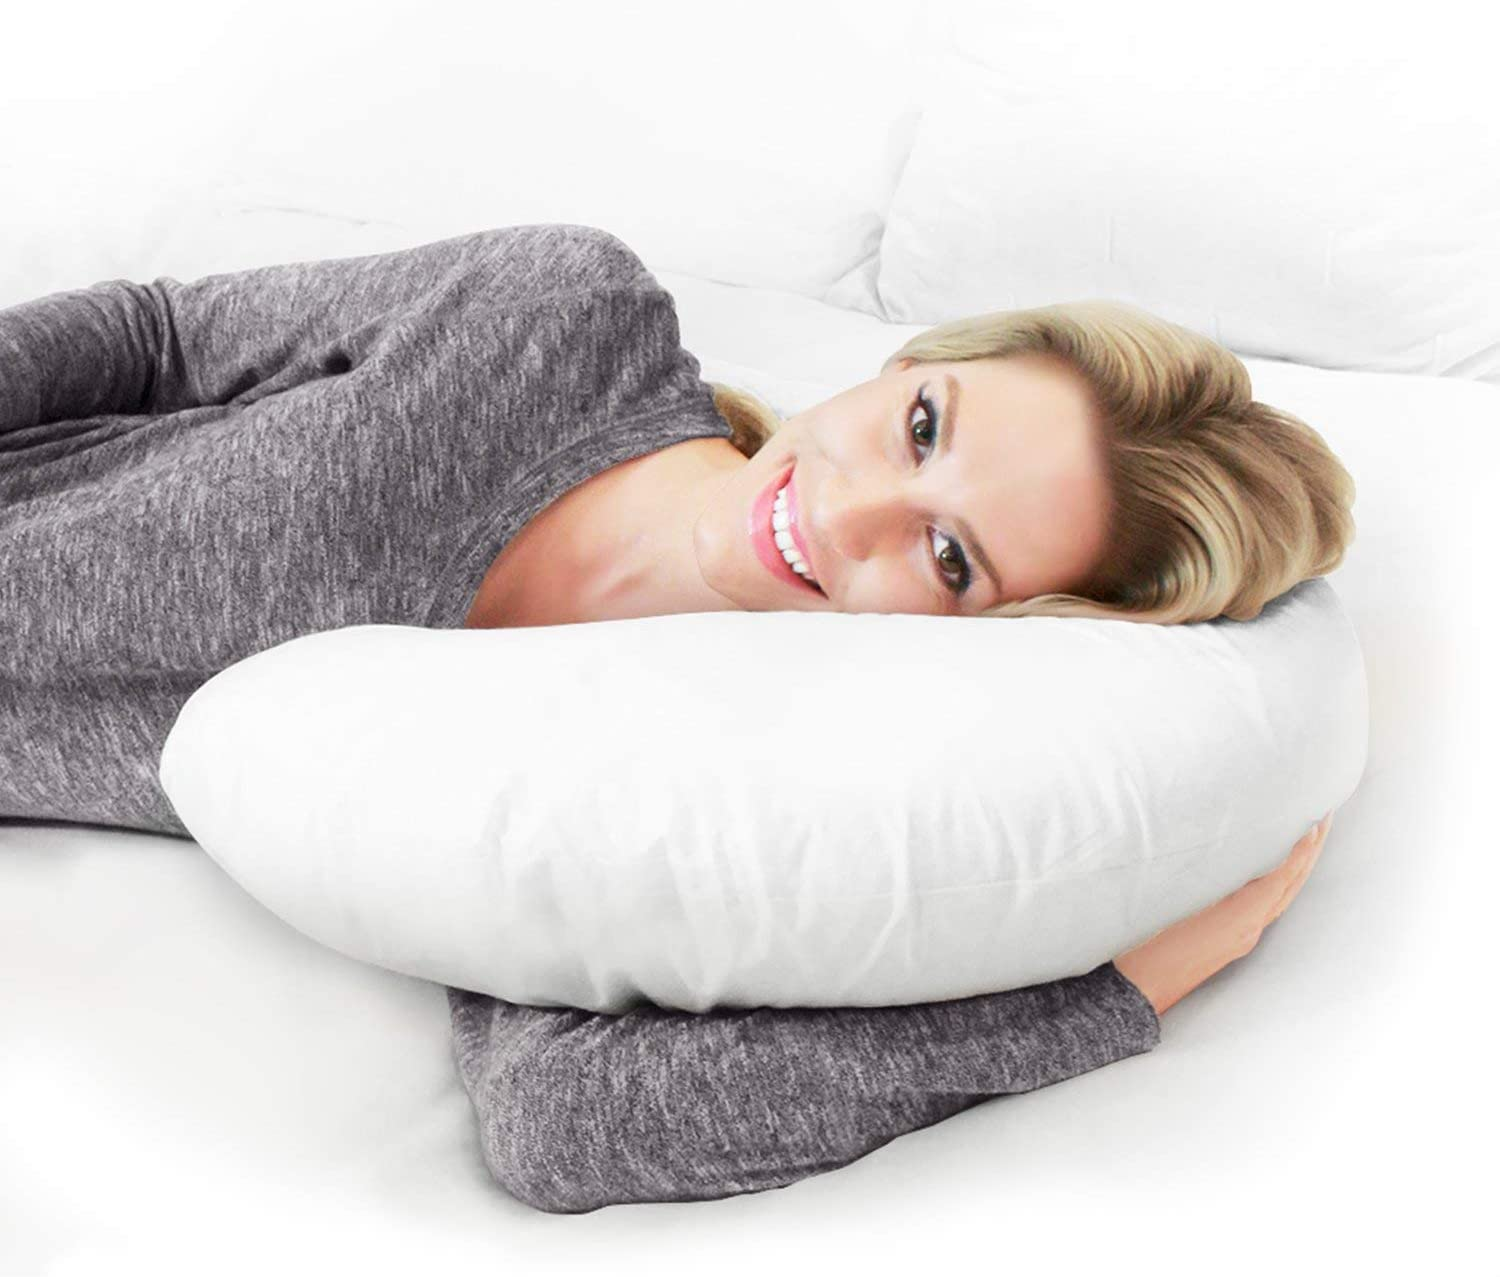 Restorology 60-Inch Full Body Pregnancy Pillow - C-Shaped Maternity and Nursing Support Cushion with Washable Cover